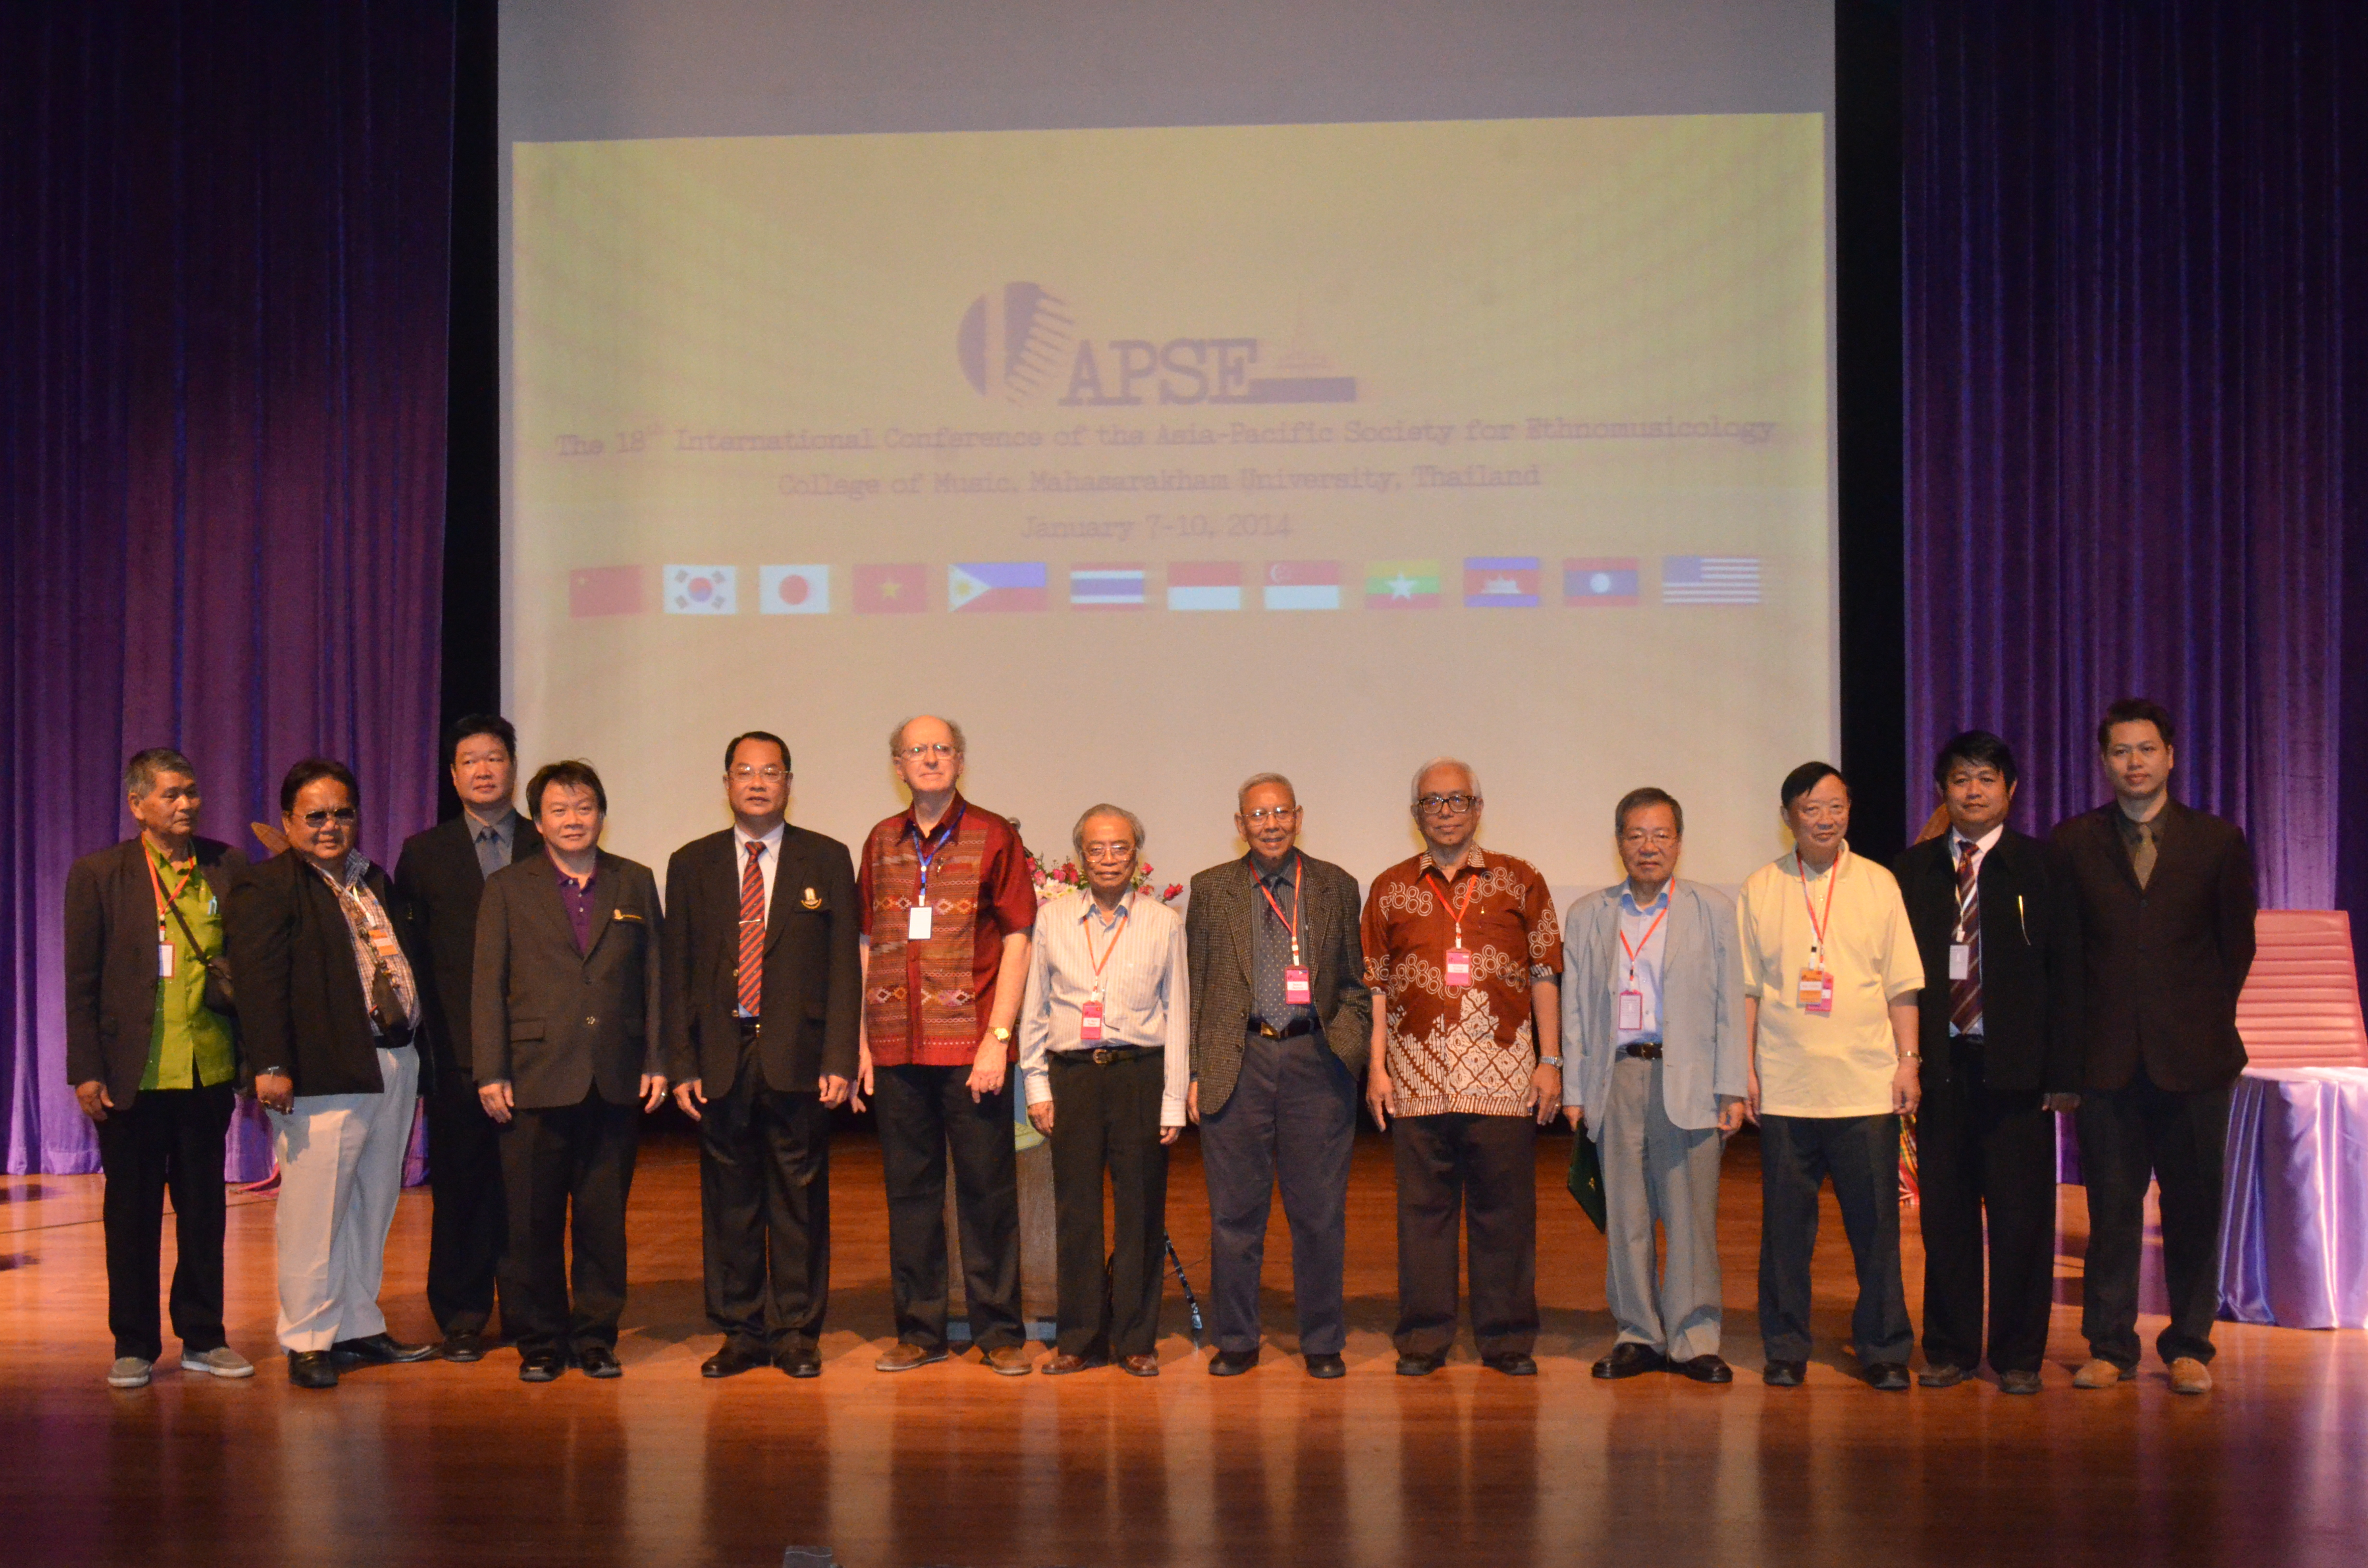 18th International Conference of the Asia-Pacific Society for Ethnomusicology held at MSU